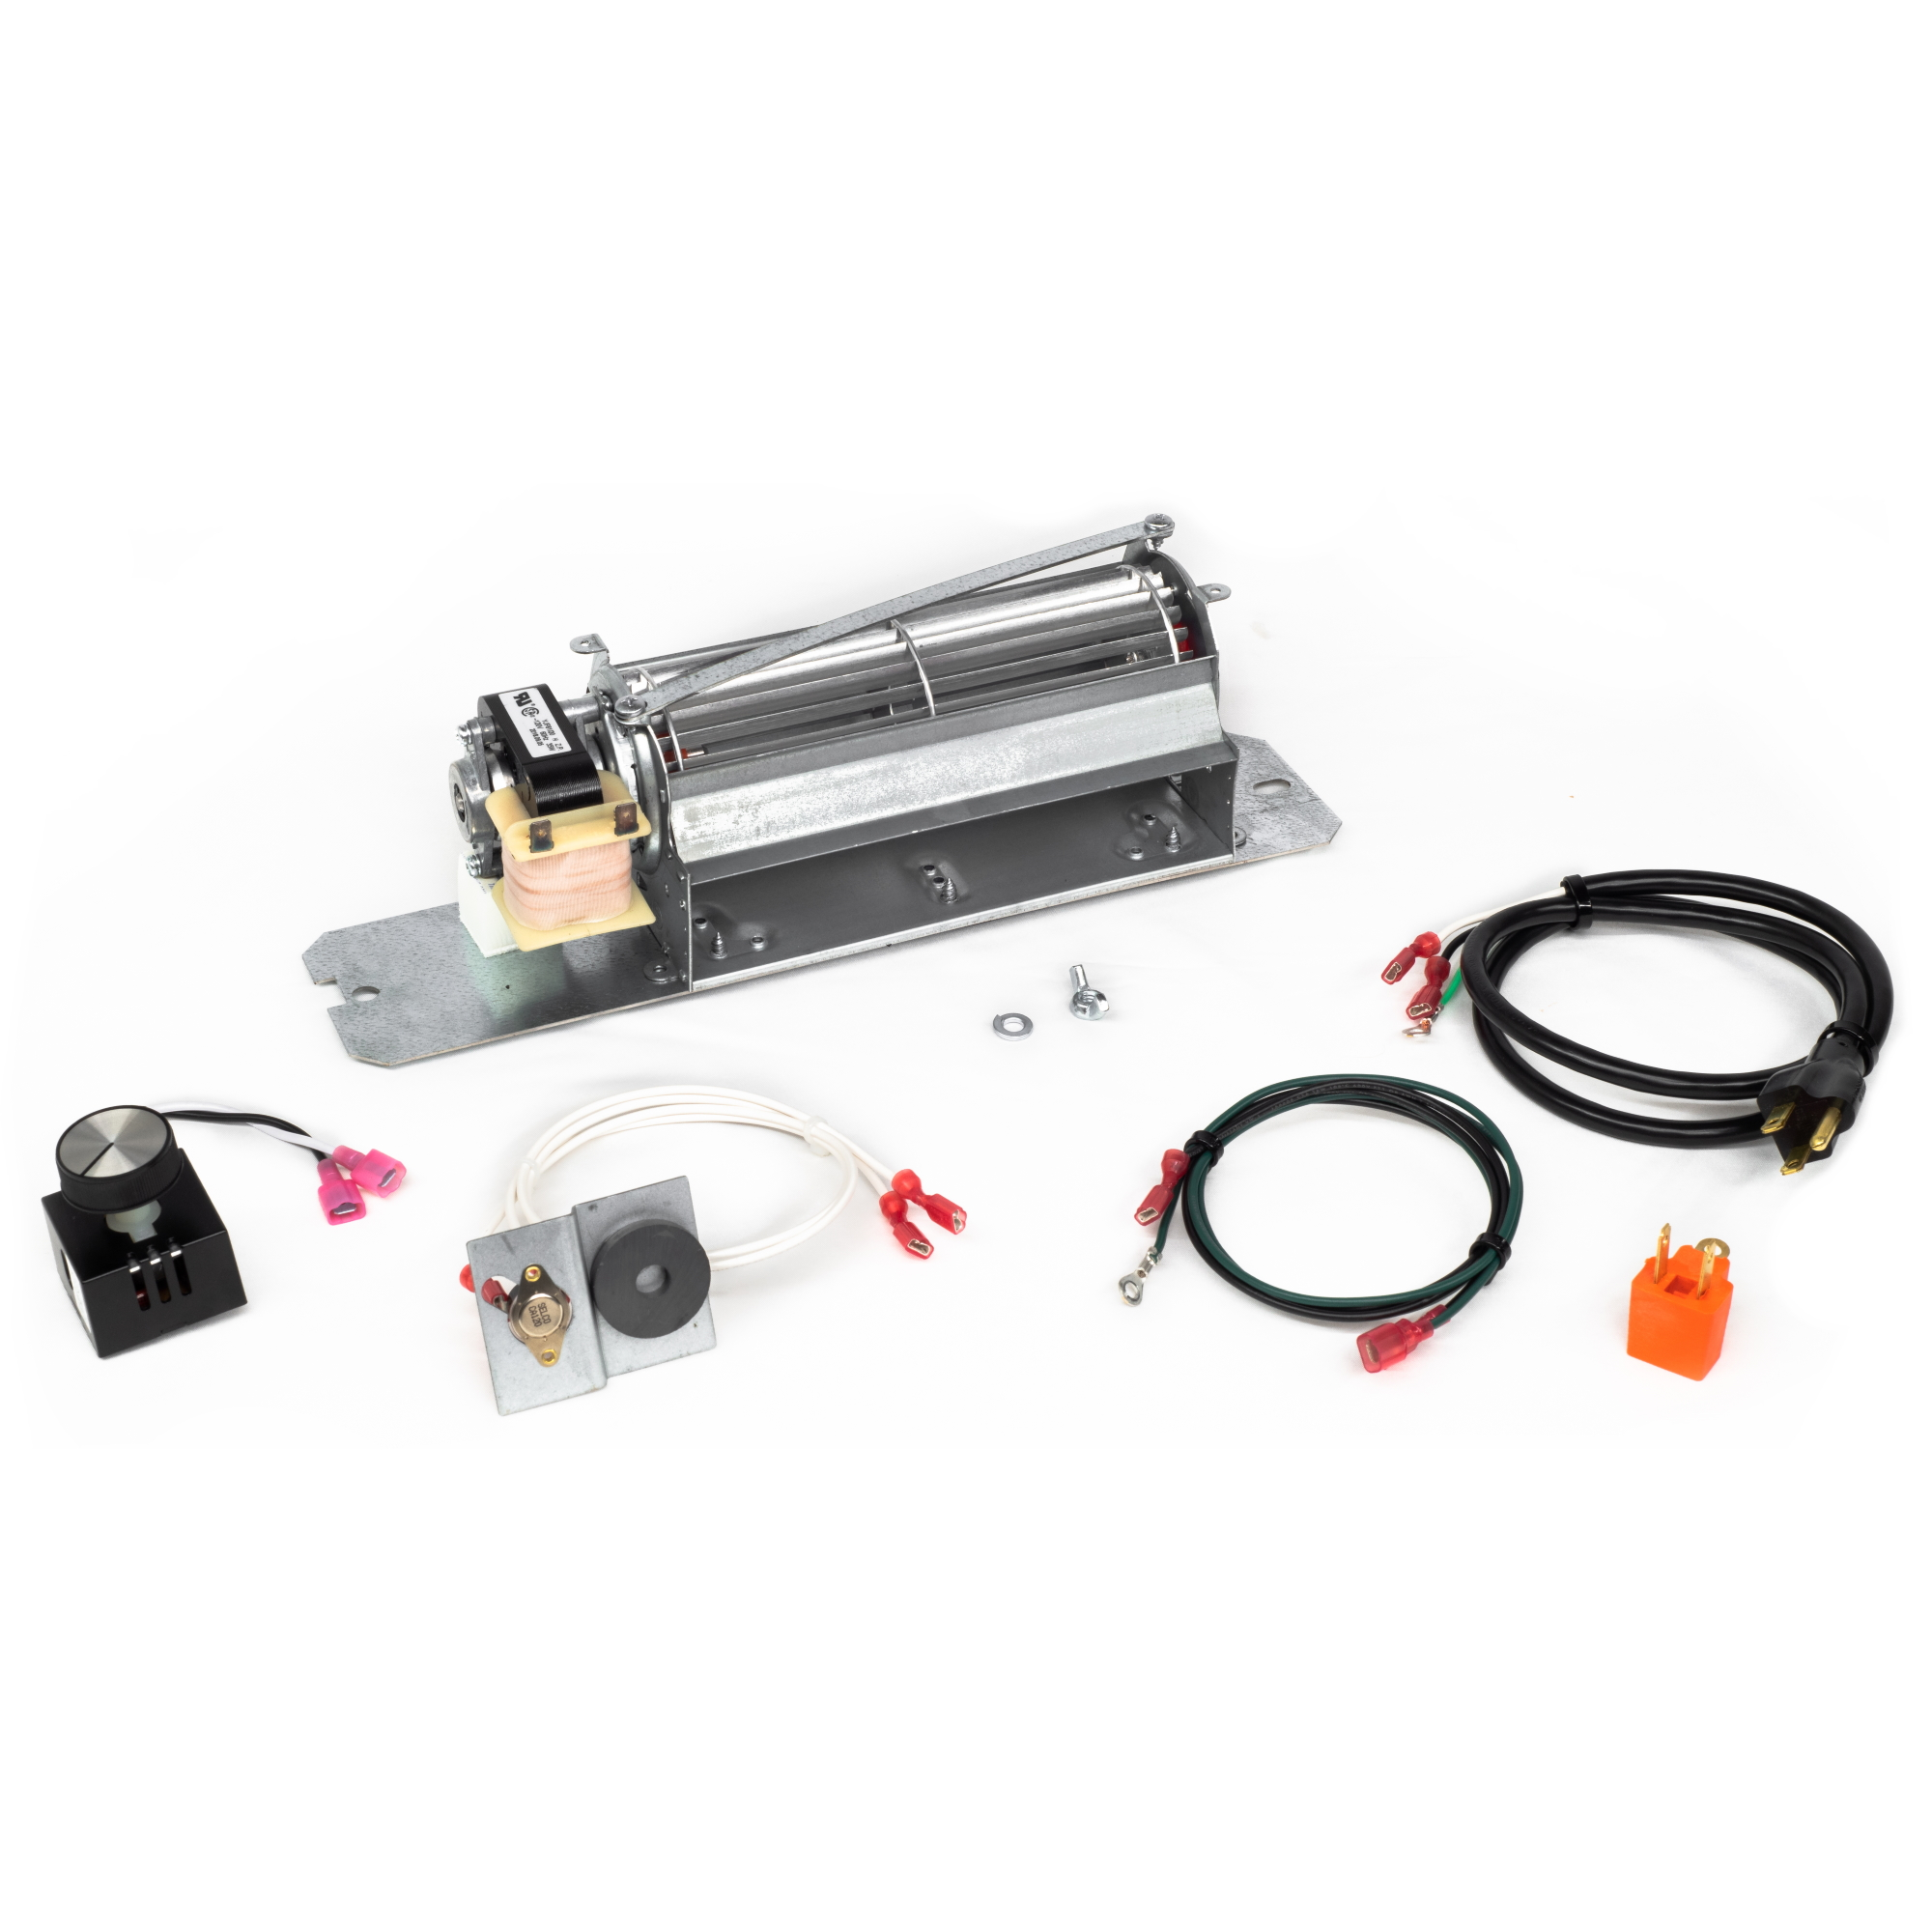 GZ550-1KT Blower Fan Kit for Continental & Napoleon Fireplaces